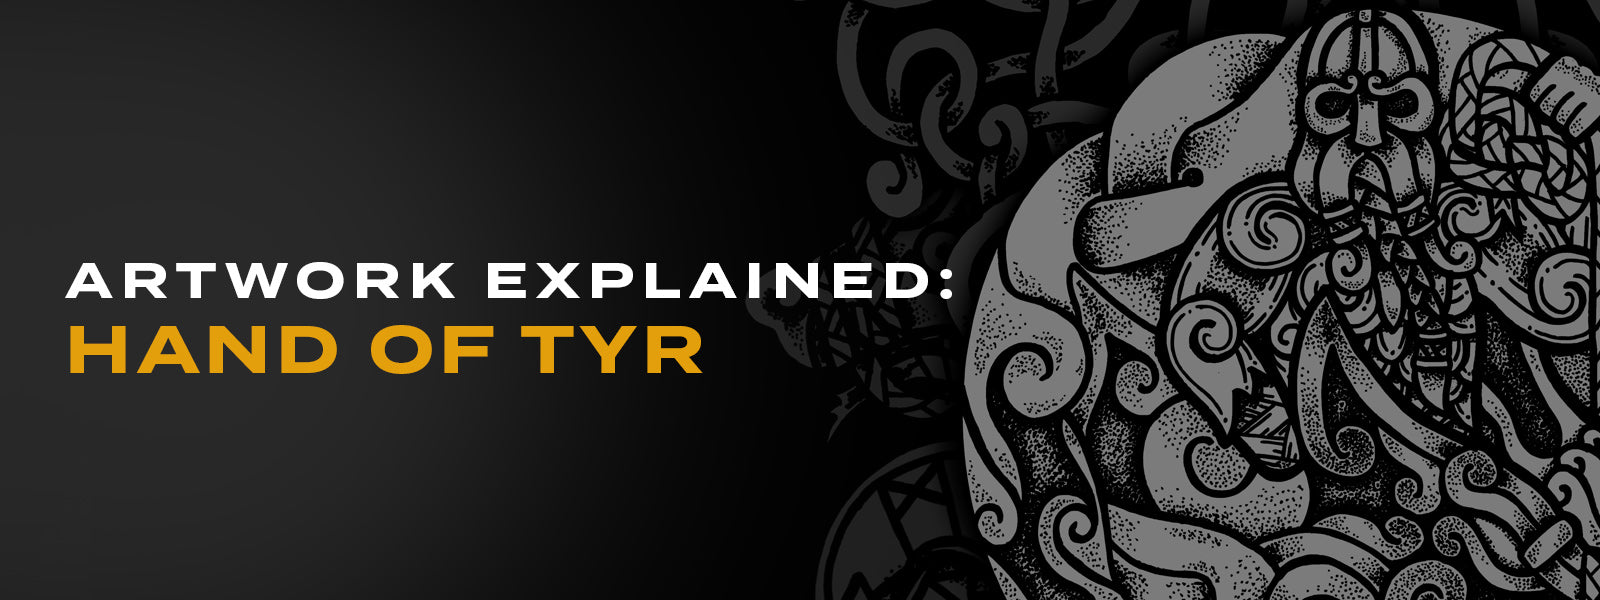 Artwork Explained: Hand of Tyr